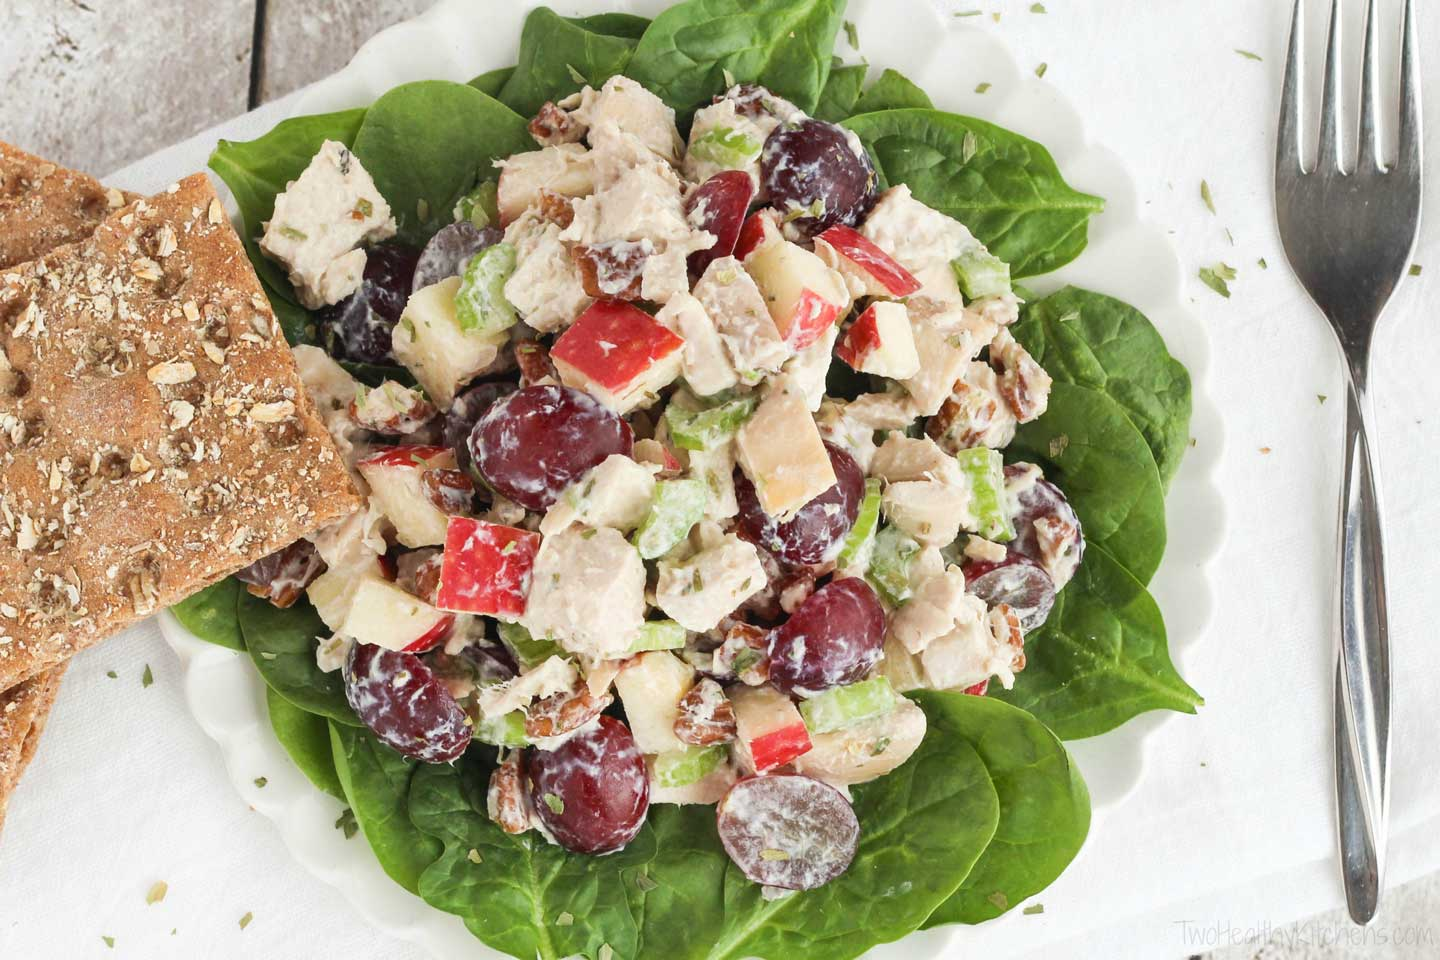 Looking for a gluten free chicken salad recipe? Serve this up on a bed of crisp lettuce! Our chicken salad with grapes recipe is gluten free … just be sure if you're serving it with crackers that they're gluten free, too!